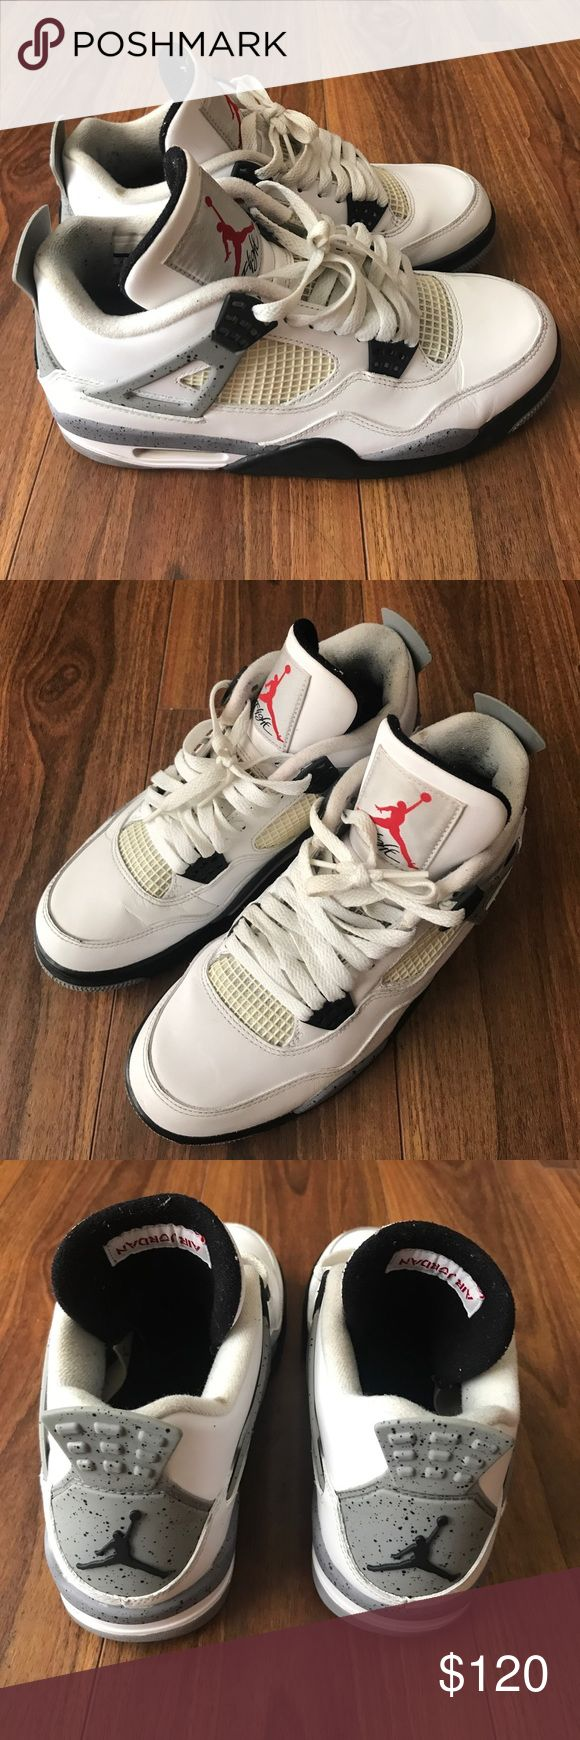 Air Jordan Retro 4 Basketball Sneakers Shoes sz. 8 Used condition with plenty of wear left! Comes with the Jordan tag but no original box! I'm not the original owner, but the previous owner smoked so shoes may smell. Will do my best to clean and take out smell! Serious offers only! Message me at mikemfdoom at yahoo to strike a deal. Air Jordan Shoes Sneakers